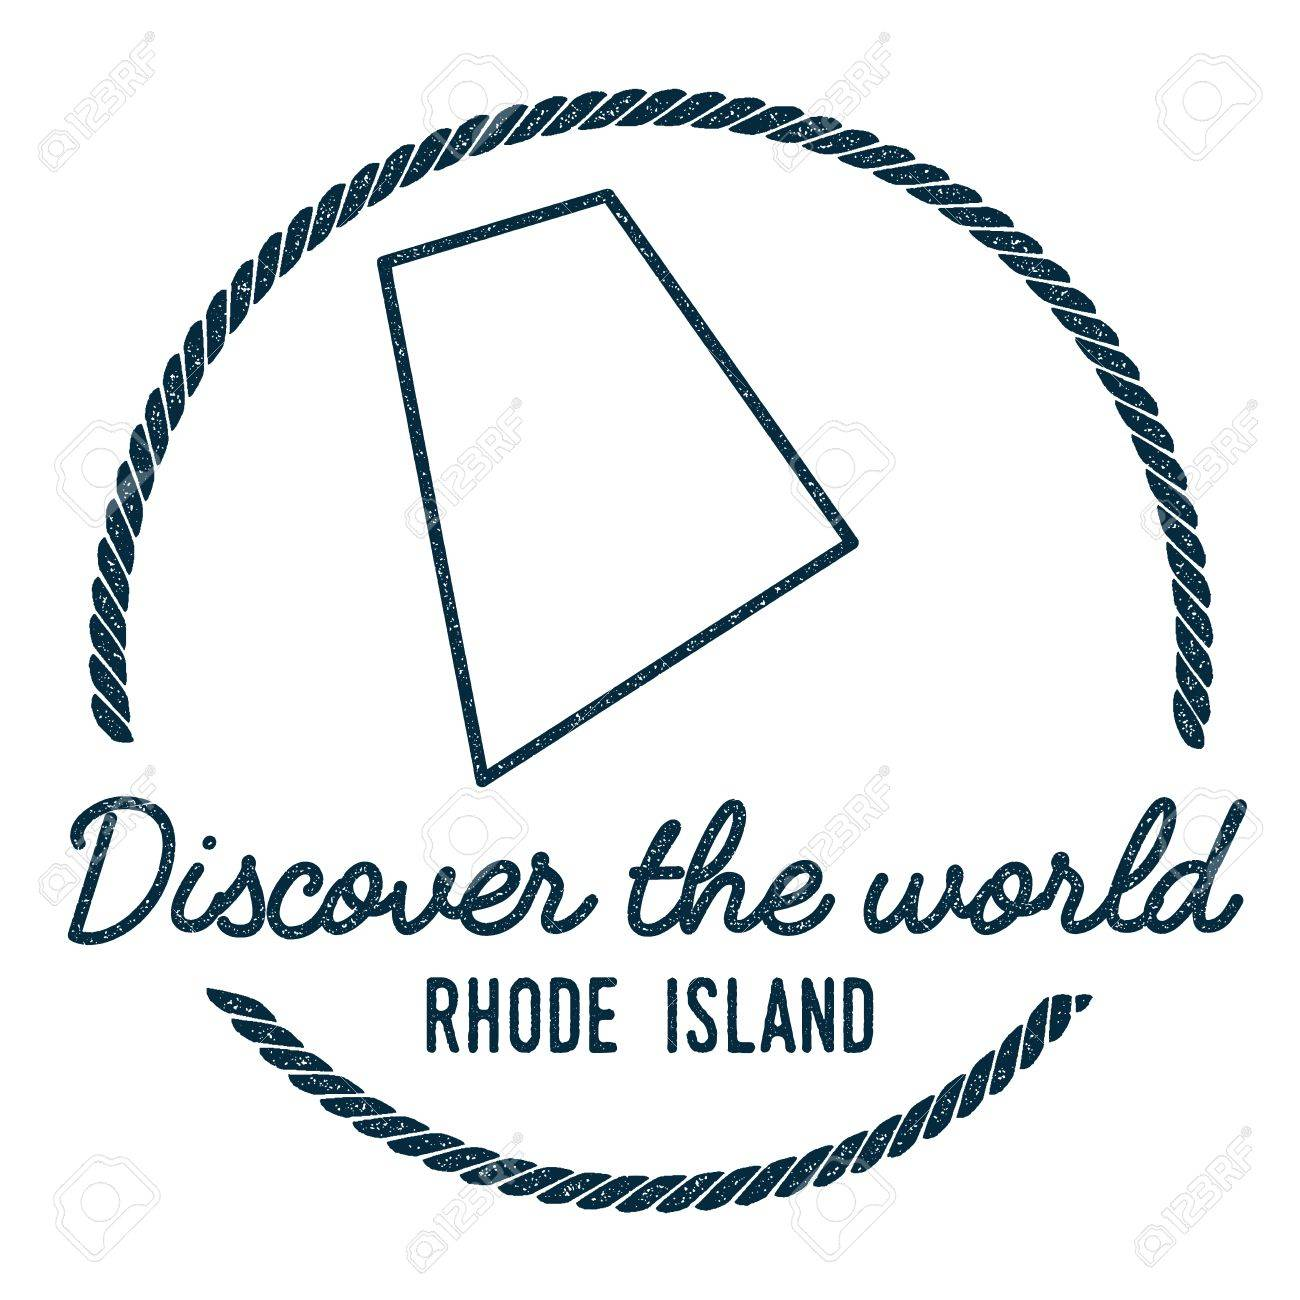 Rhode island map outline vintage discover the world rubber stamp rhode island map outline vintage discover the world rubber stamp with rhode island map gumiabroncs Choice Image